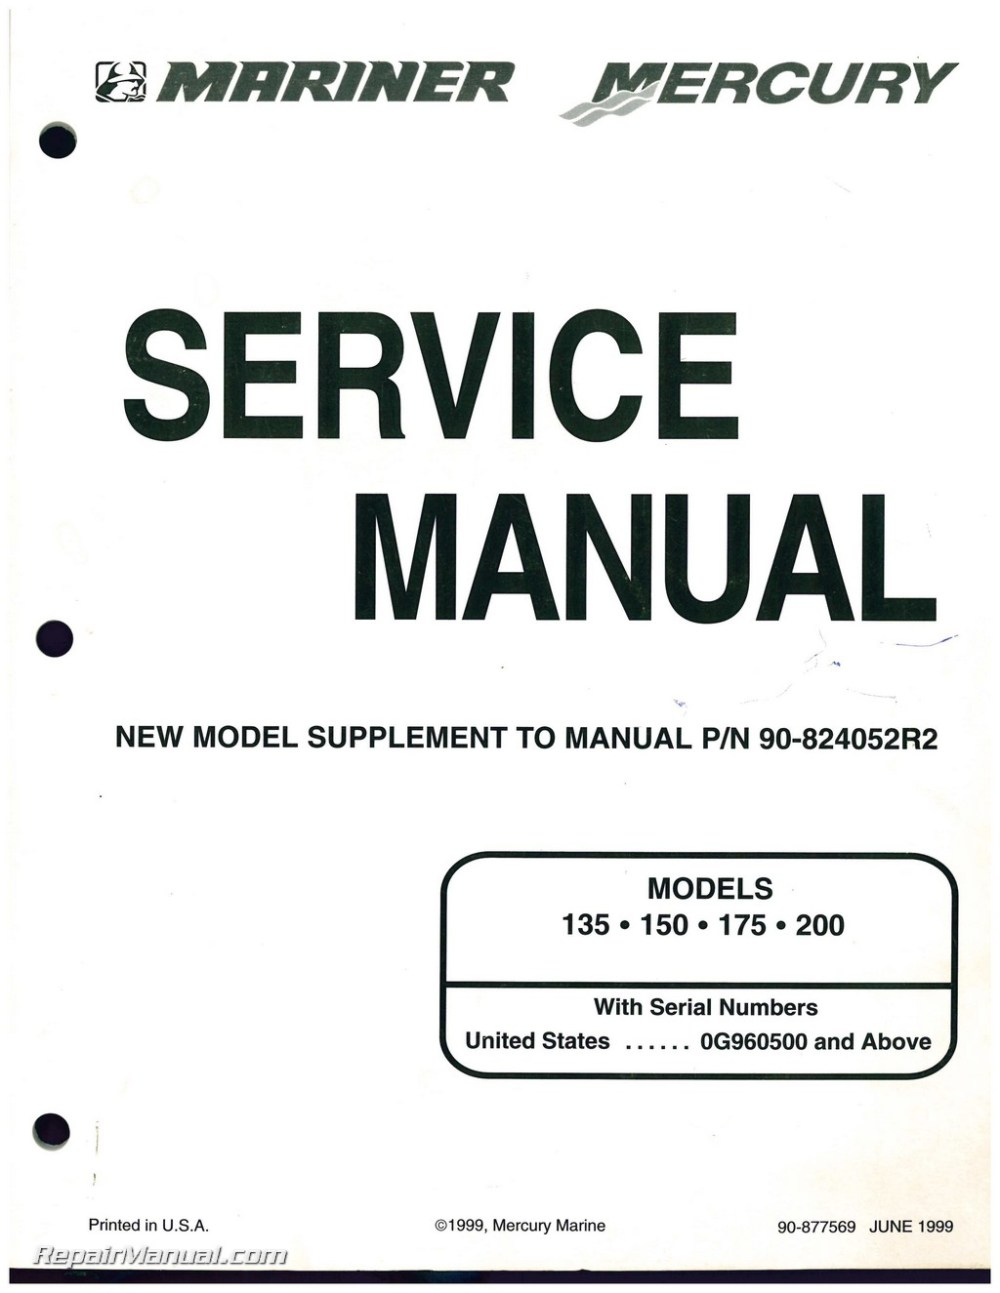 medium resolution of used mariner mercury 135 150 175 200 marine engine service manual supplement